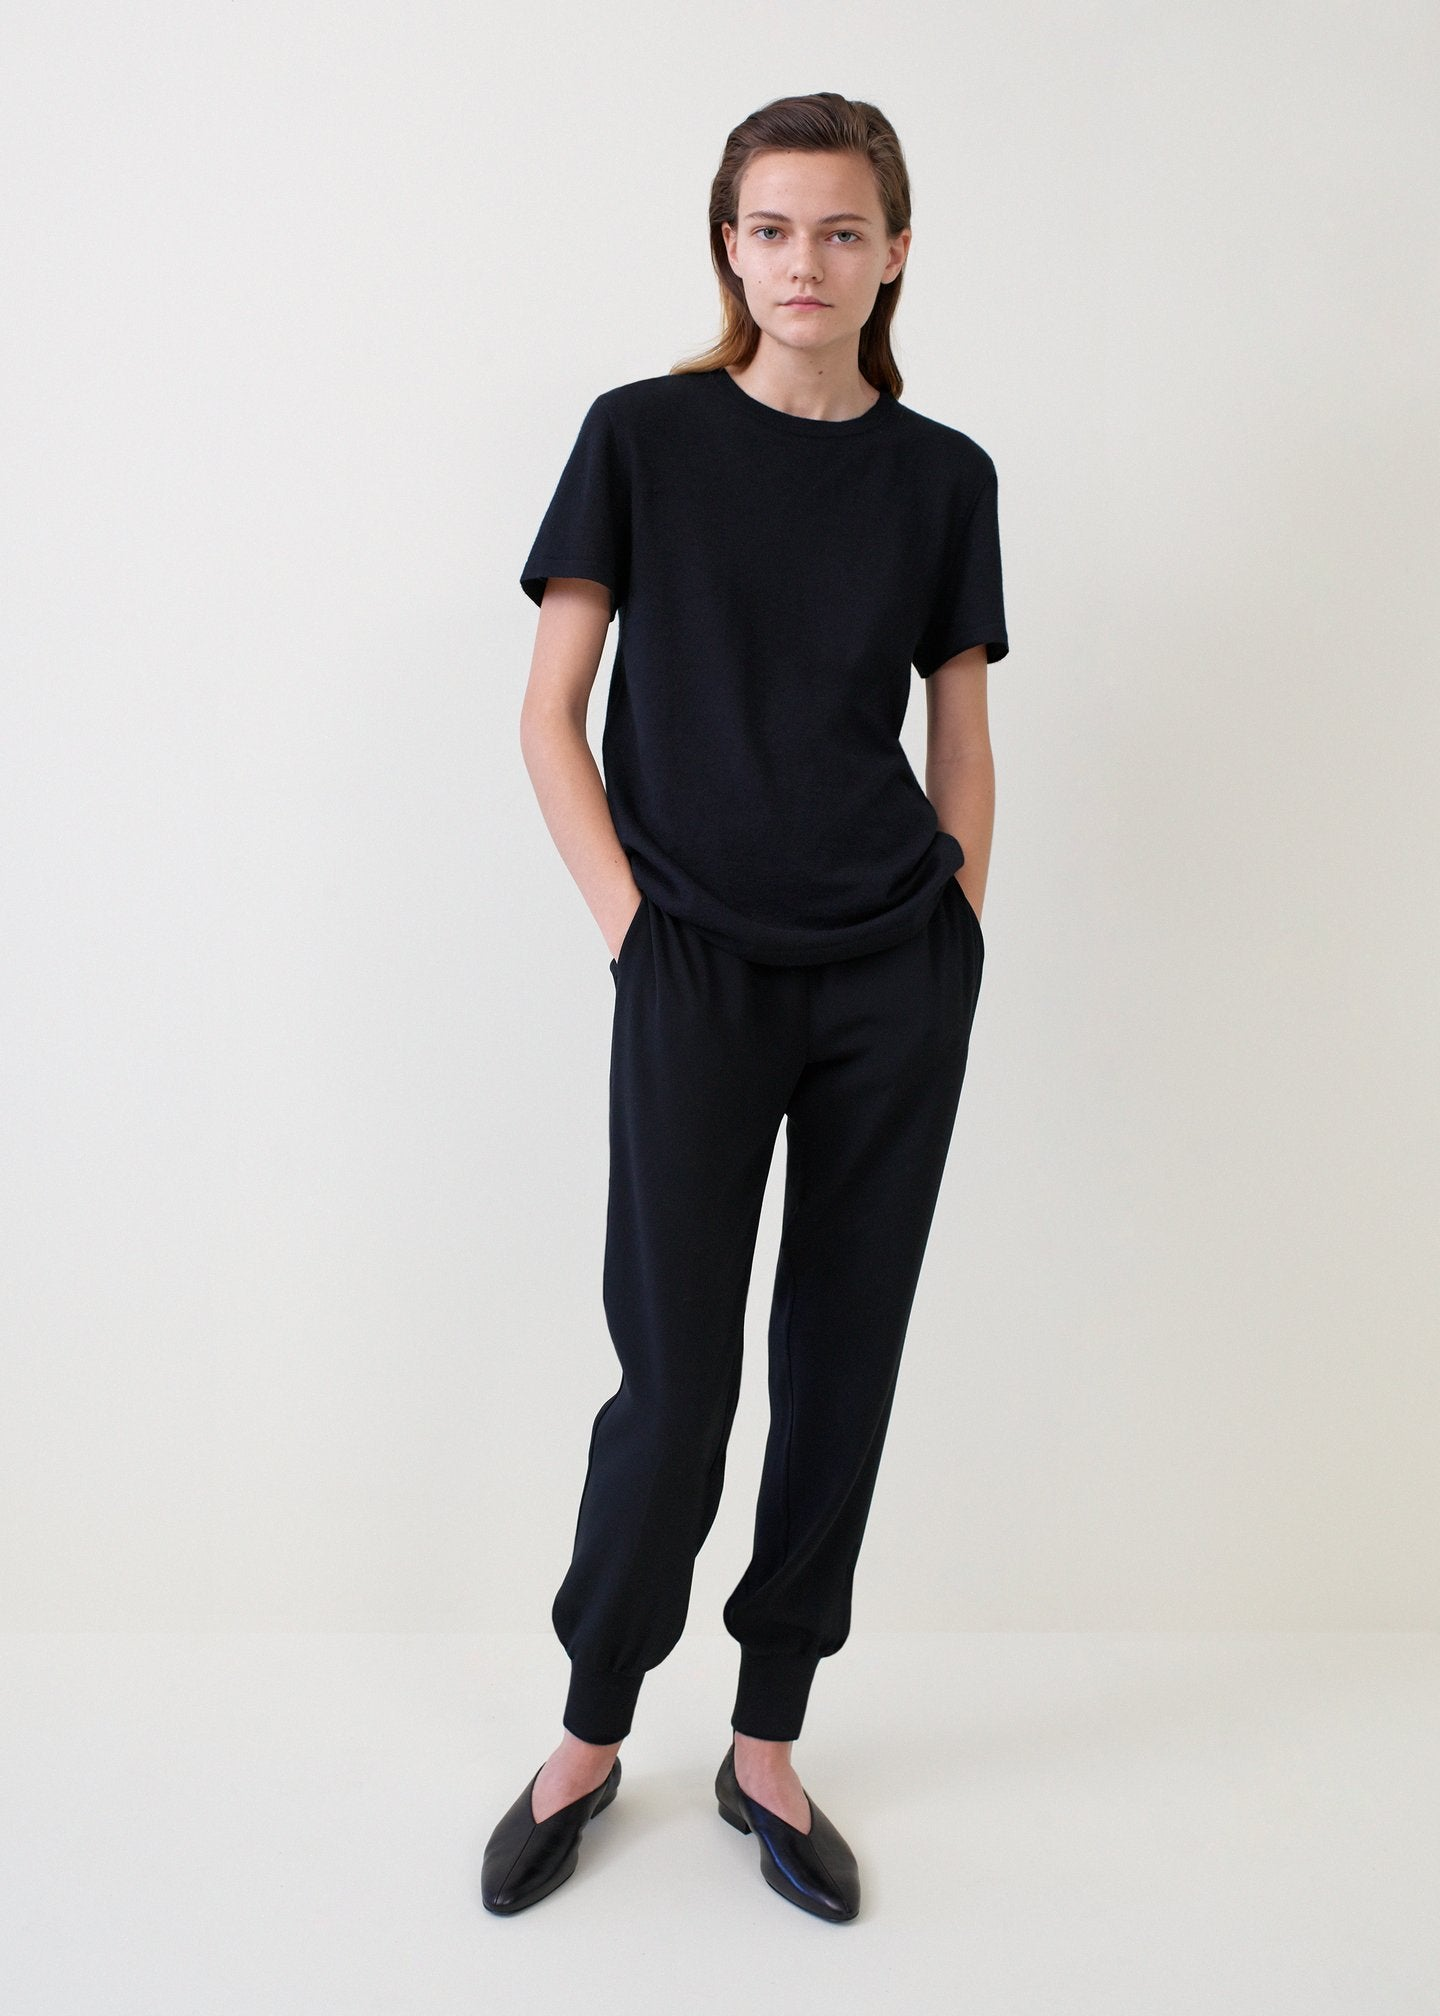 Black Cashmere T-Shirt and Jogger Pants - Co Collections